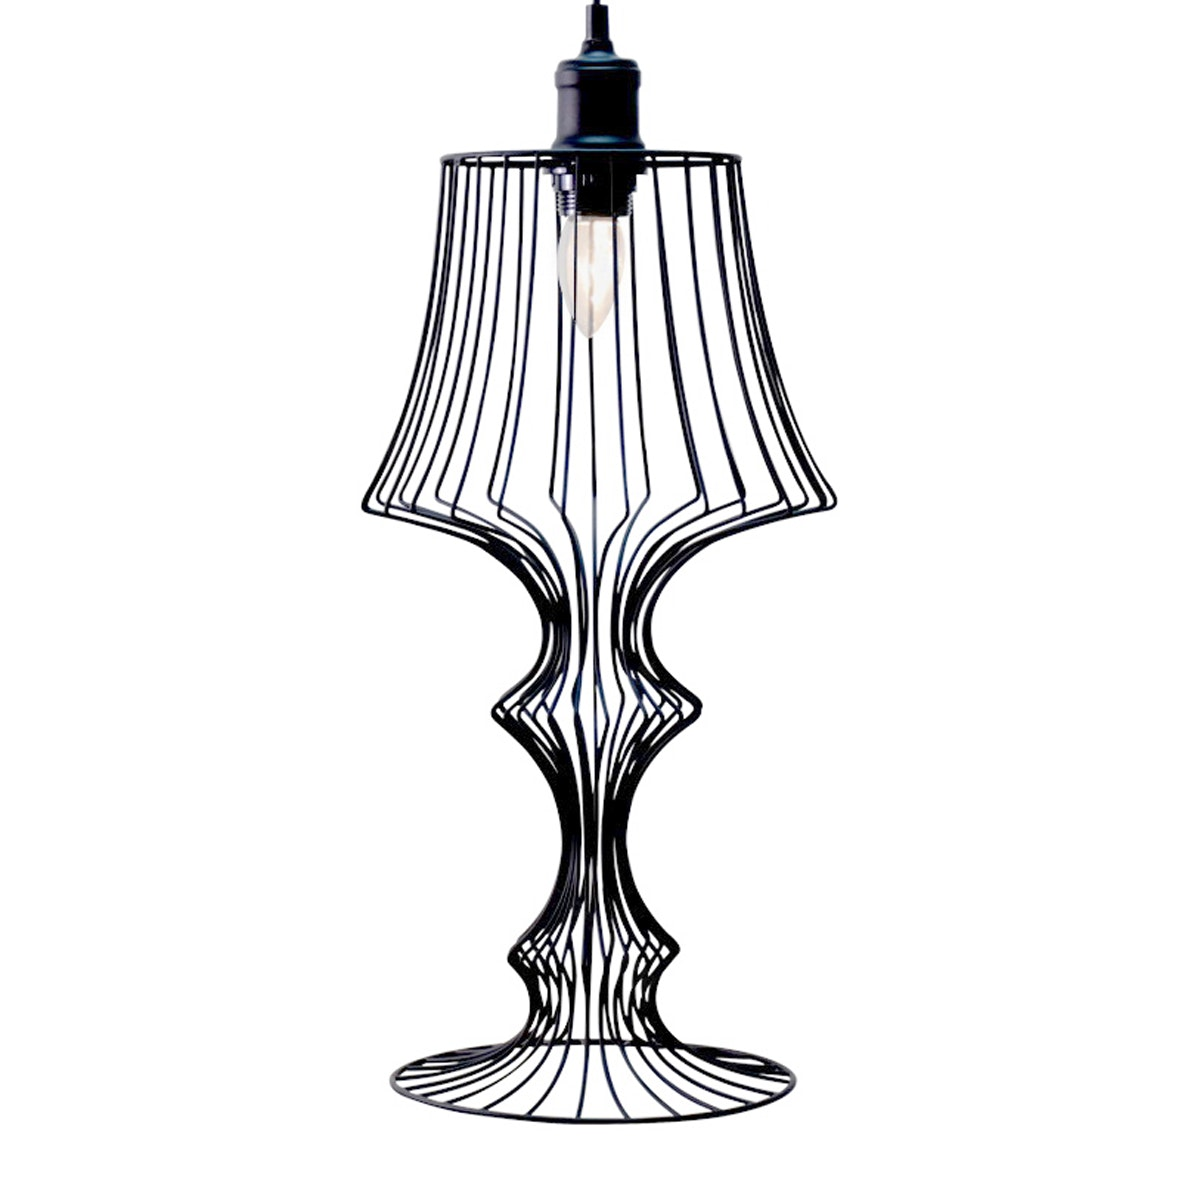 Lightology Chandelier / Lampu Gantung MDM 2339/1